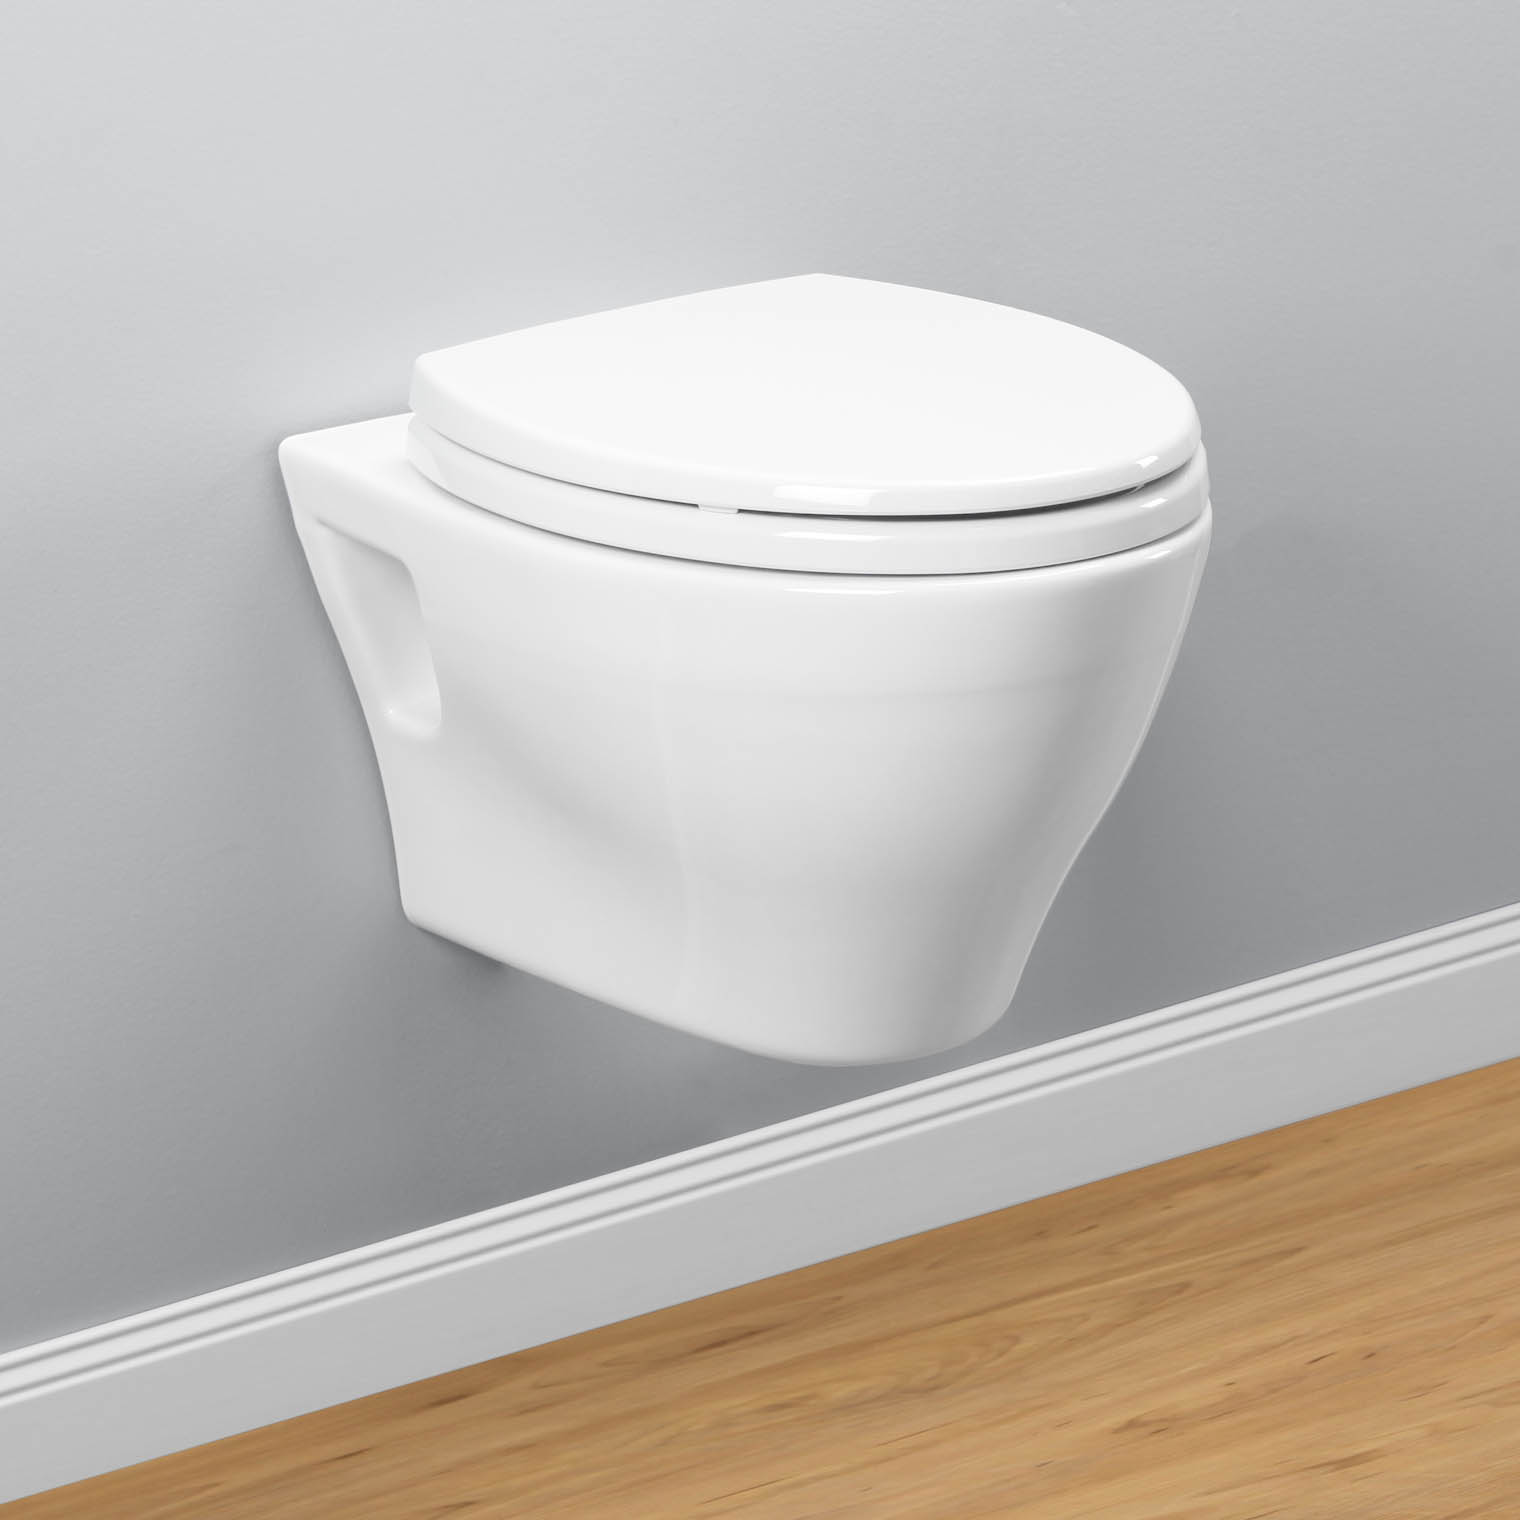 Toto toilets CT418FG 01 Aquia Wall Mounted Dual Flush Elongated patched on grey wall matched with wooden floor and white baseboard molding for toilet decor ideas